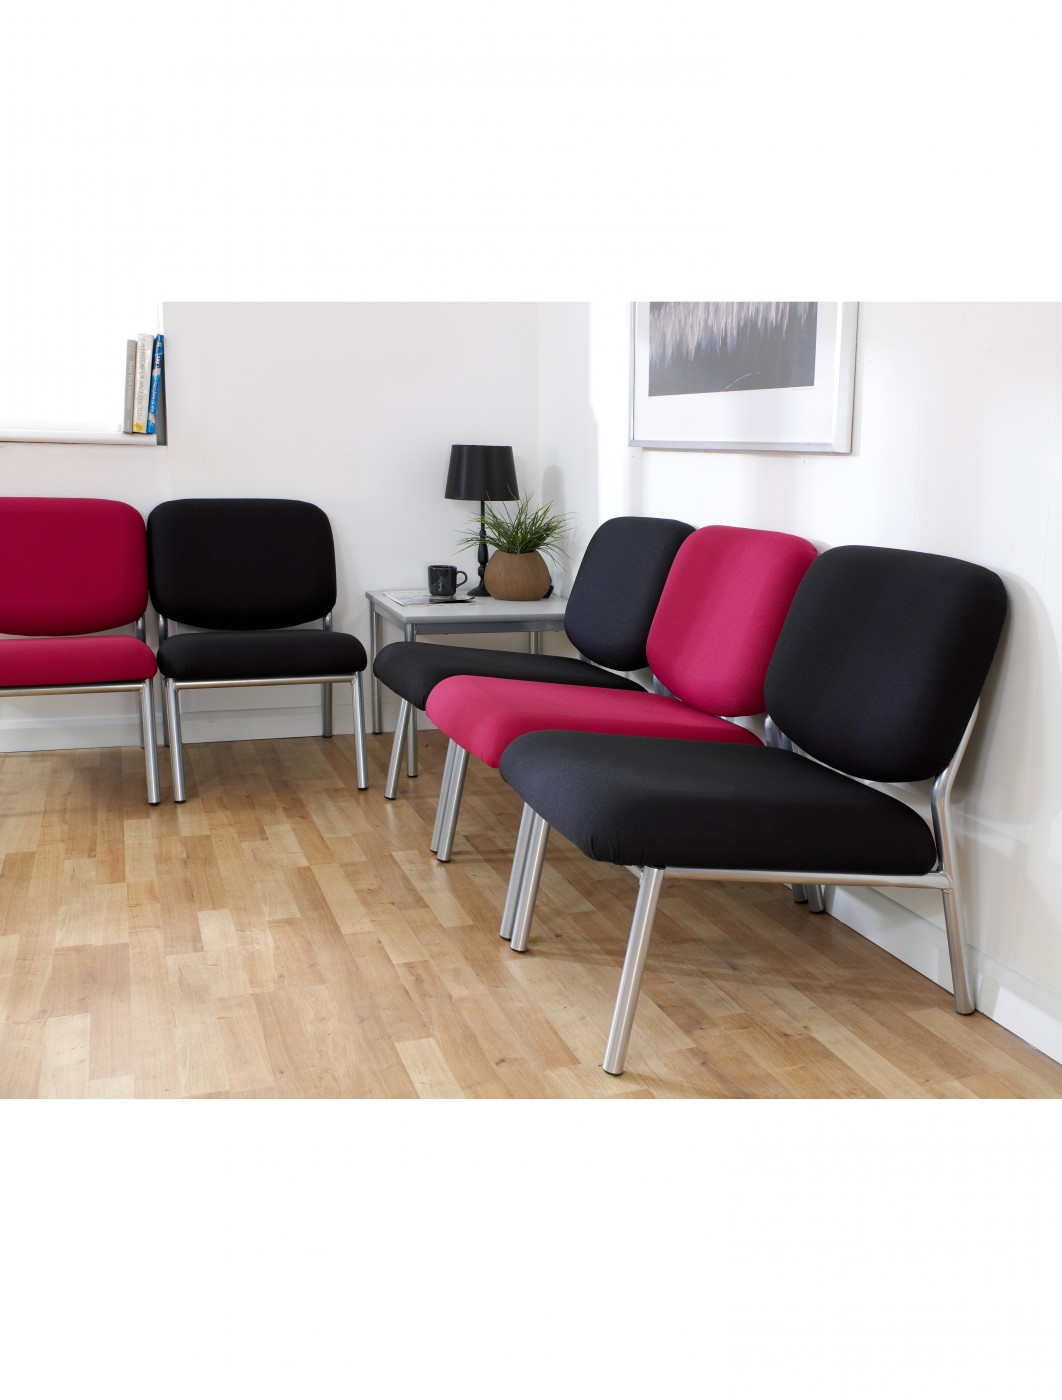 Staff Room Chair-Puffin Chair